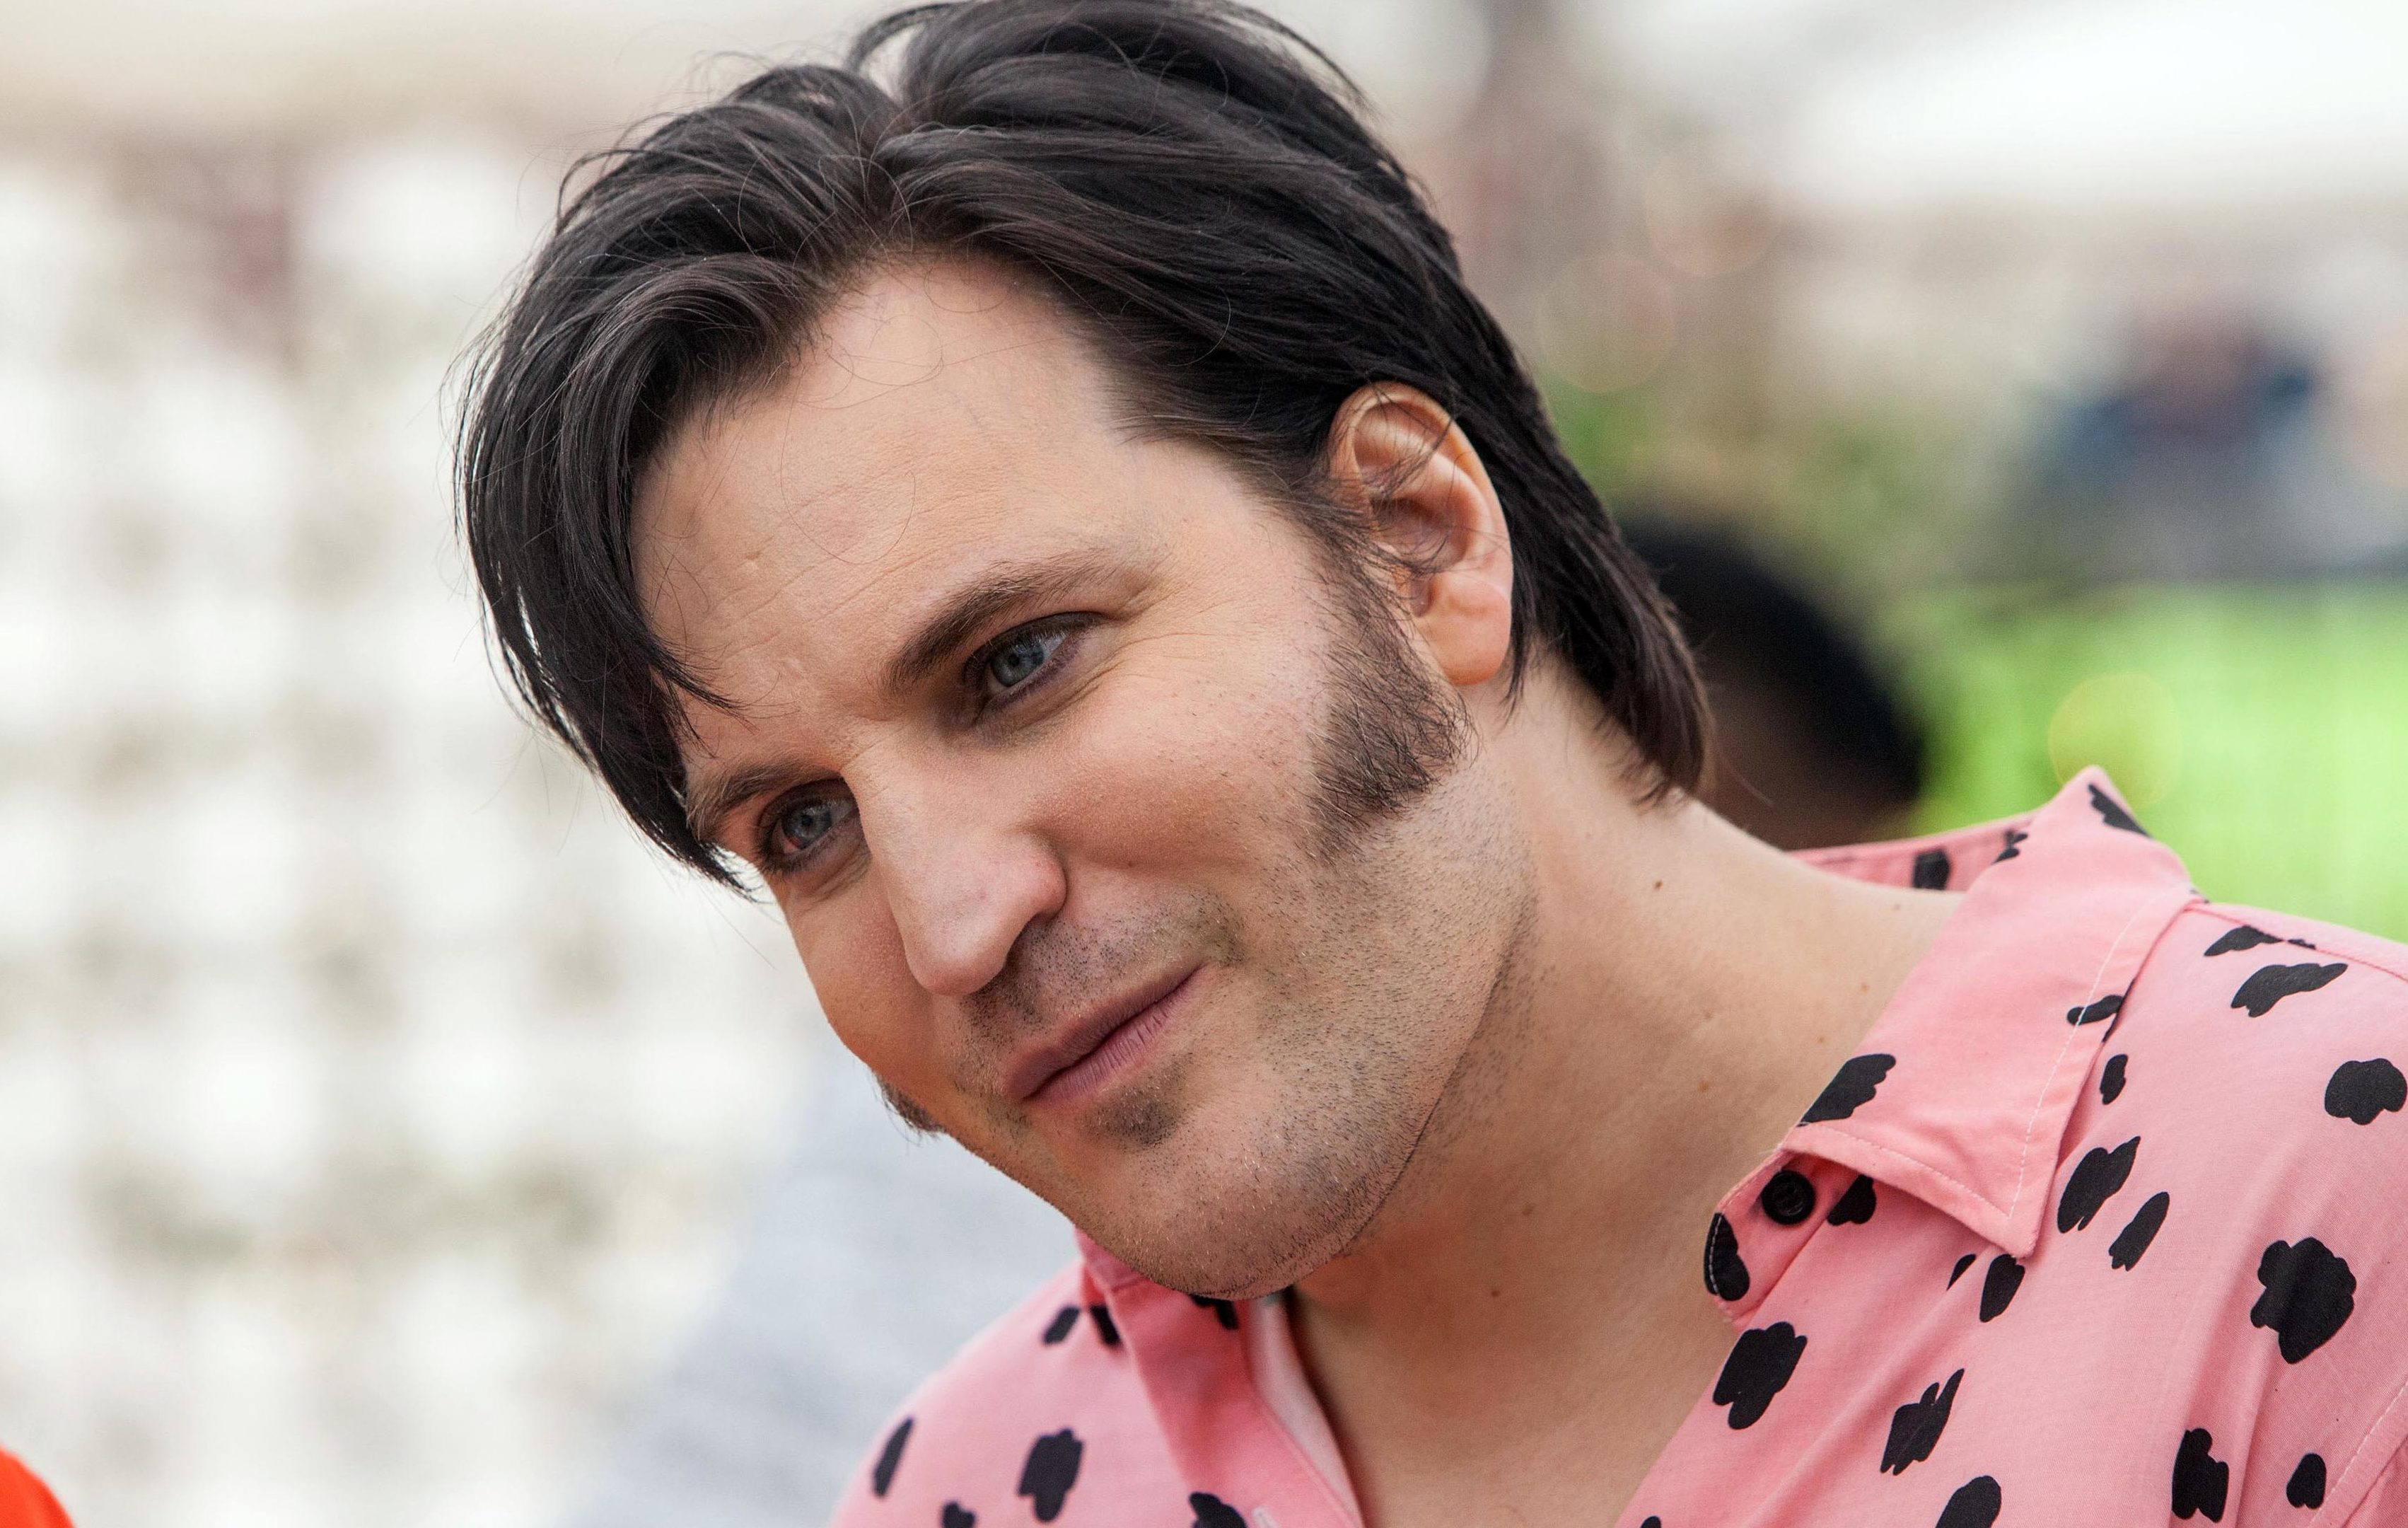 Noel Fielding (Mark Bourdillon / Love Productions)